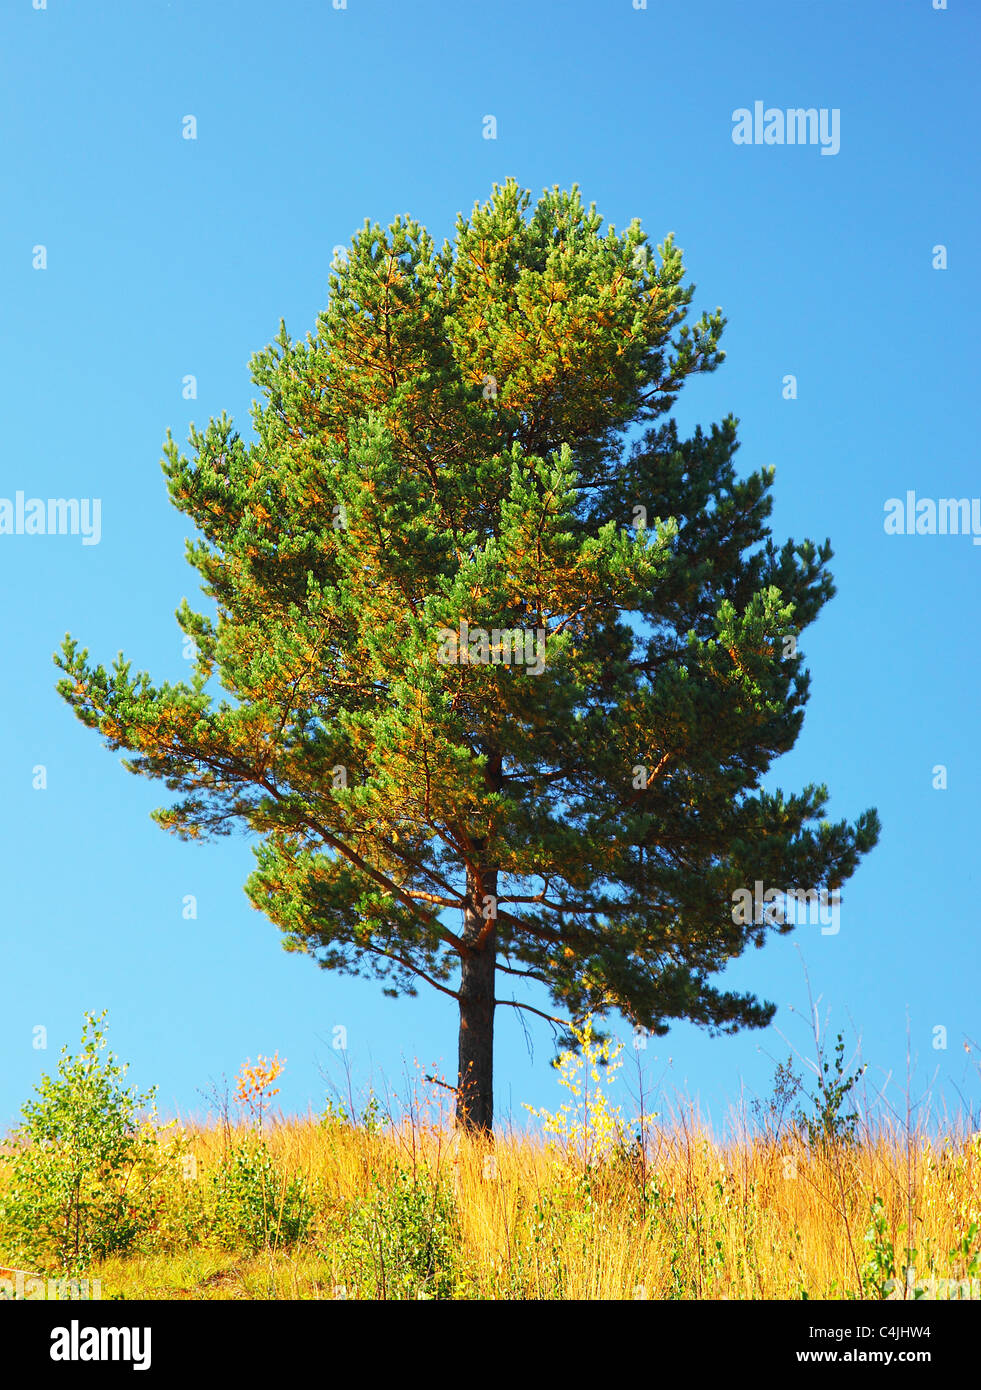 Single tree on the field, beautiful natural summer landscape, pine tree over blue sky - Stock Image